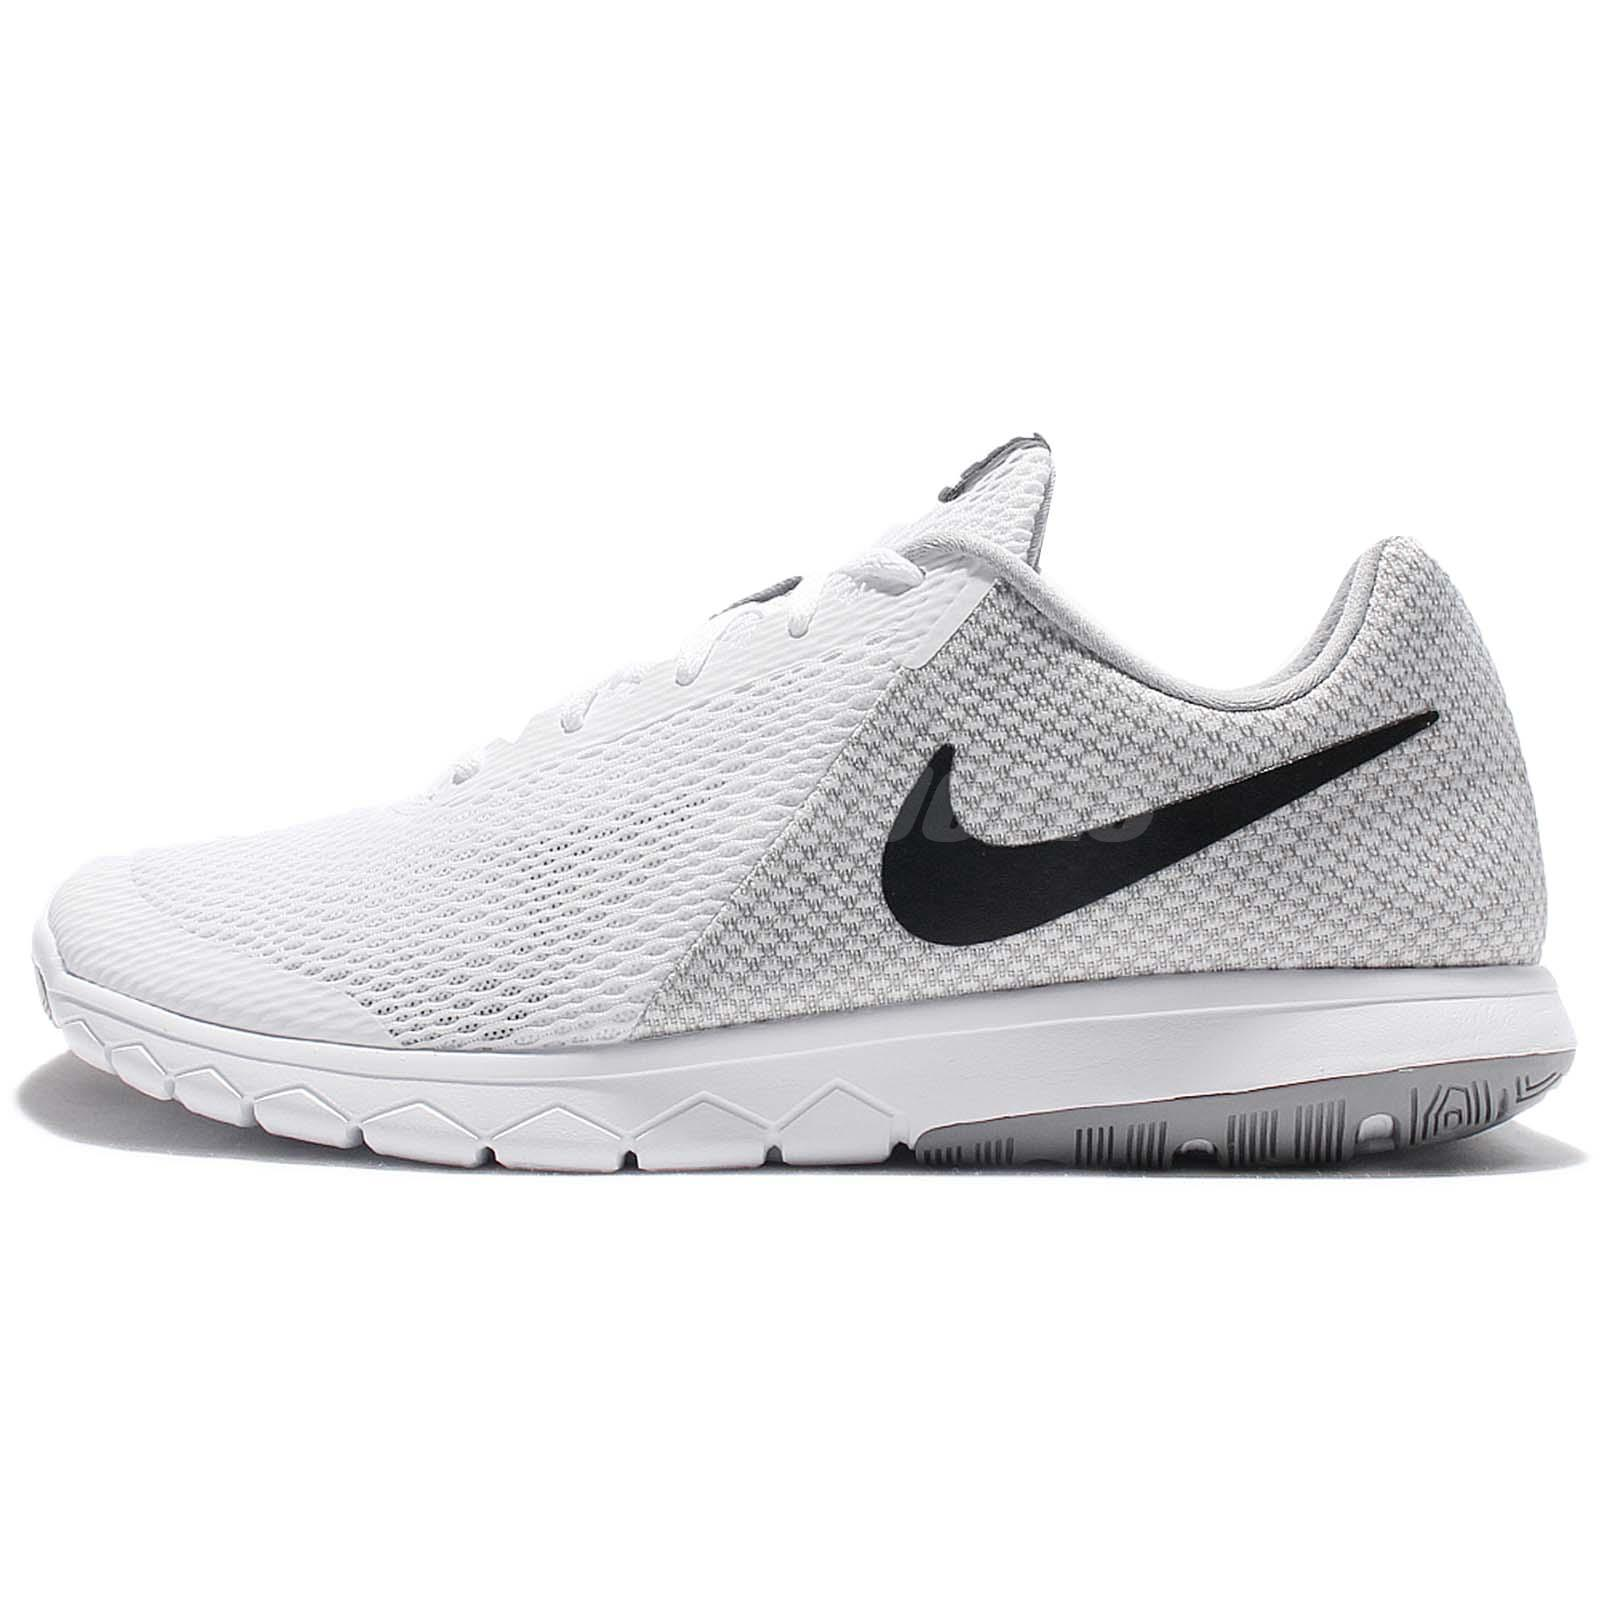 Nike Flex Experience RN 6 VI White Black Men Running Shoes Sneakers  881802-100